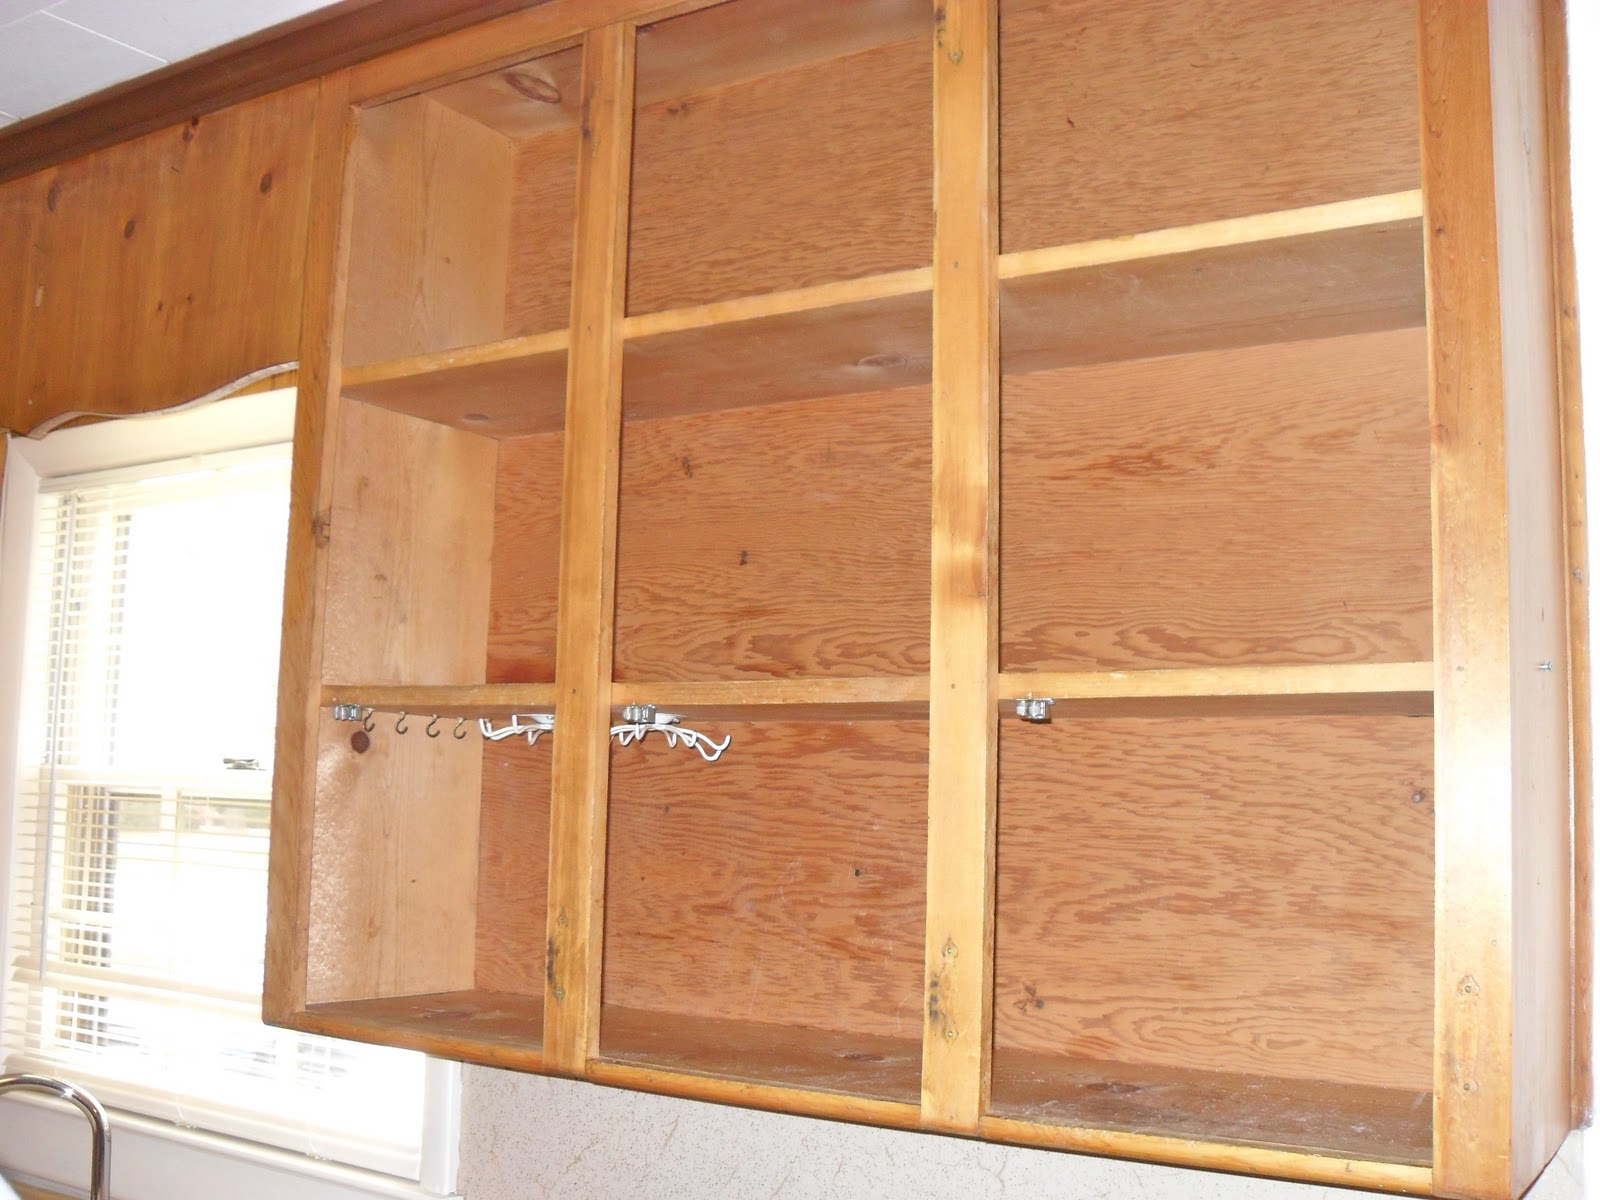 diy painting knotty pine cabinets pine kitchen cabinets DIY Painting Knotty Pine Cabinets